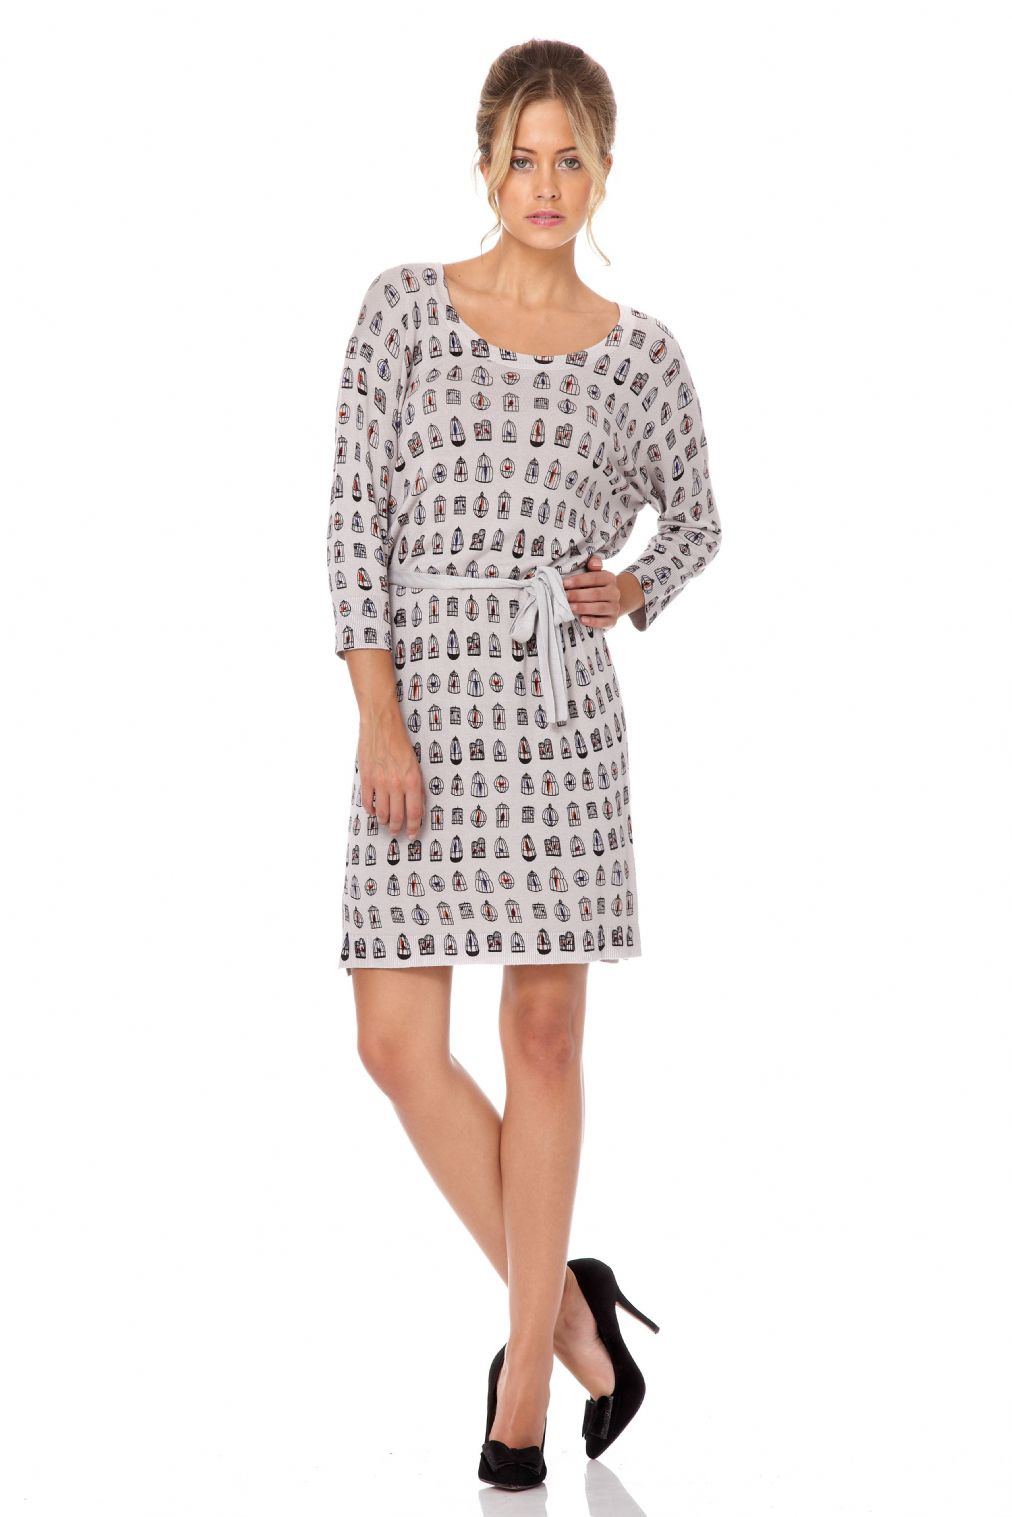 http://www.conmigolondon.co.uk/ekmps/shops/conmigo/images/miss-jolie-sk3435-bird-cage-print-jersey-dress-grey-%5B2%5D-2028-p.jpg